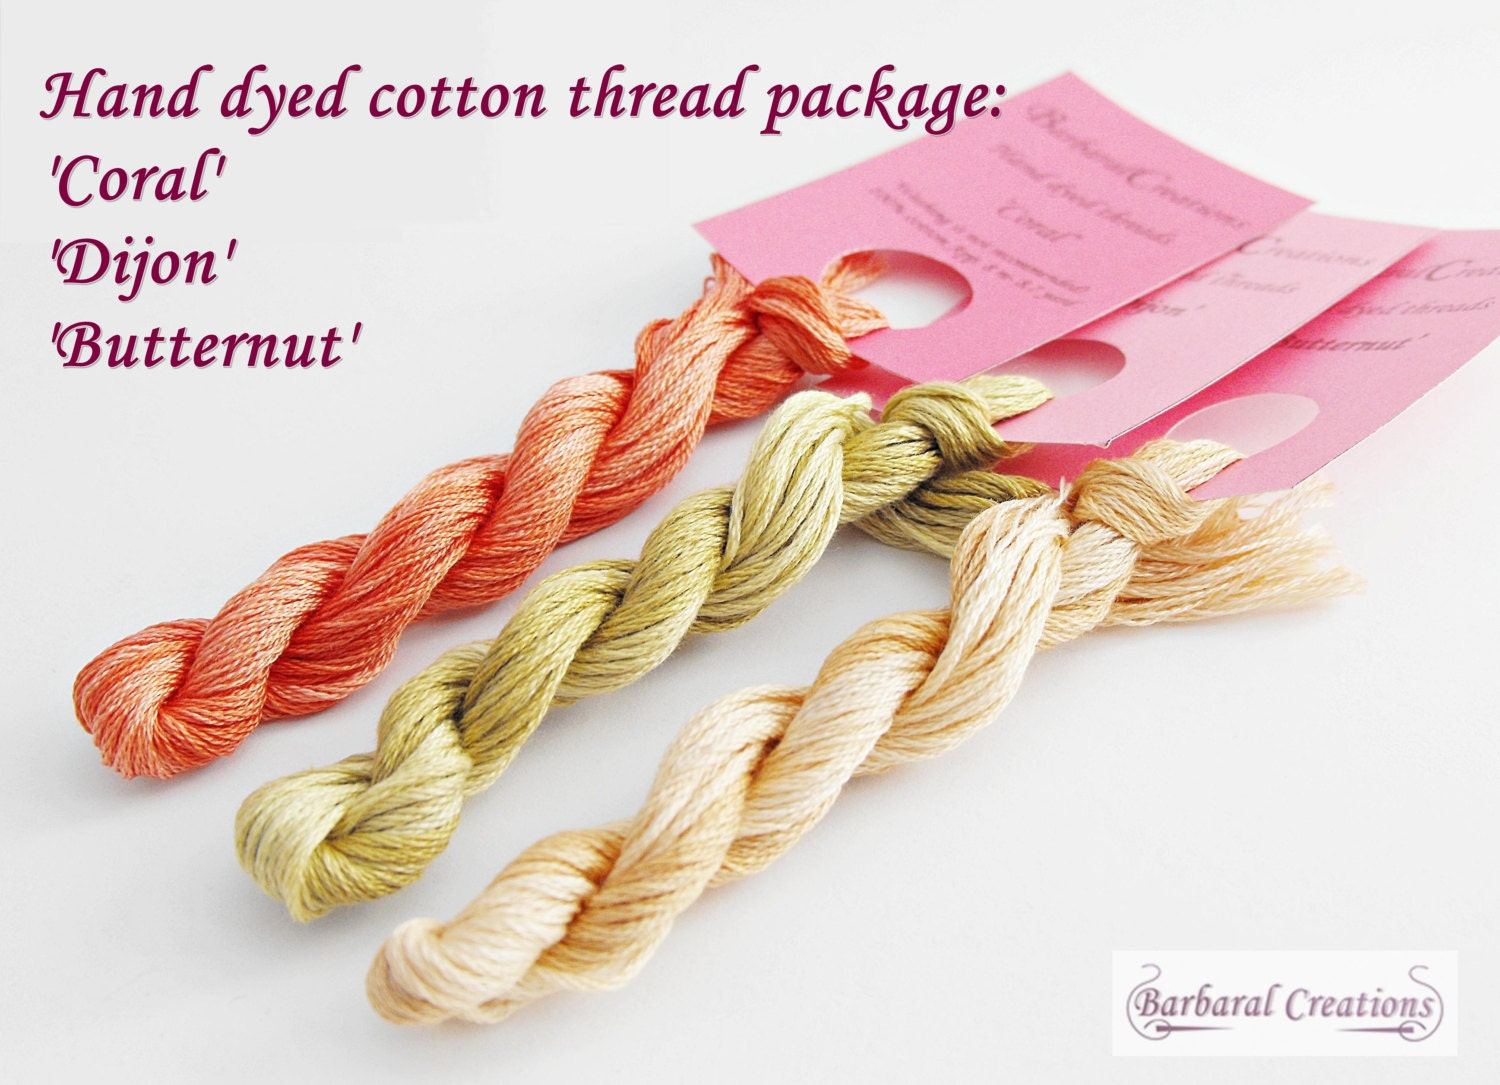 Hand Dyed Cotton Thread Package For Cross Stitching From